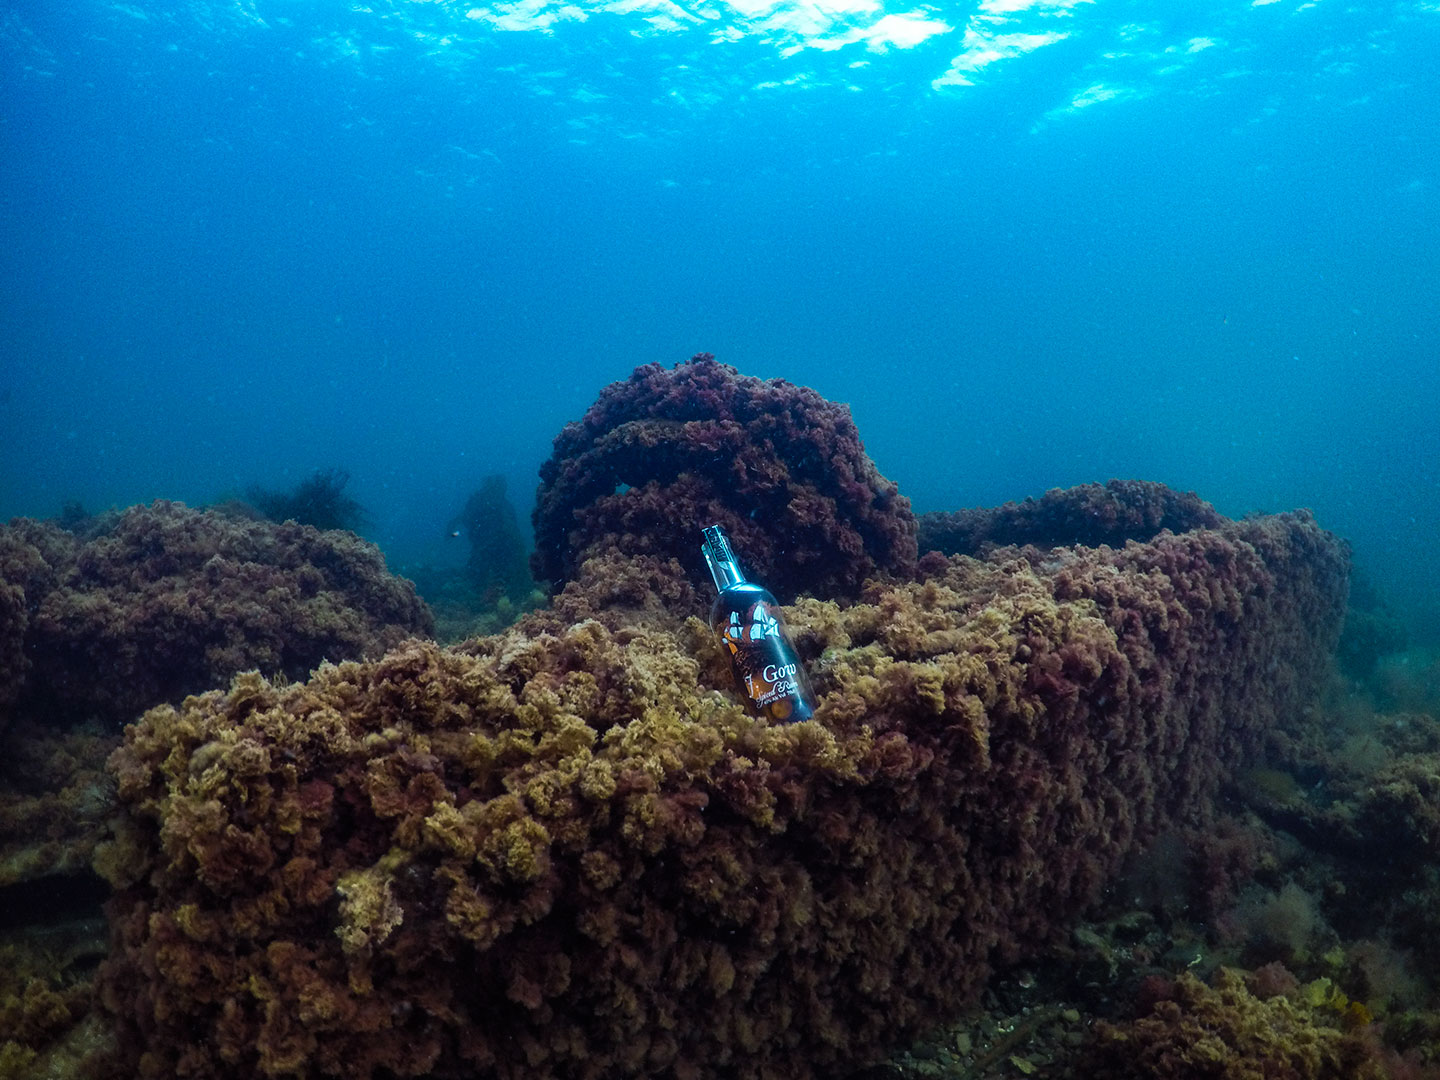 J Gow rum underwater on a shipwreck